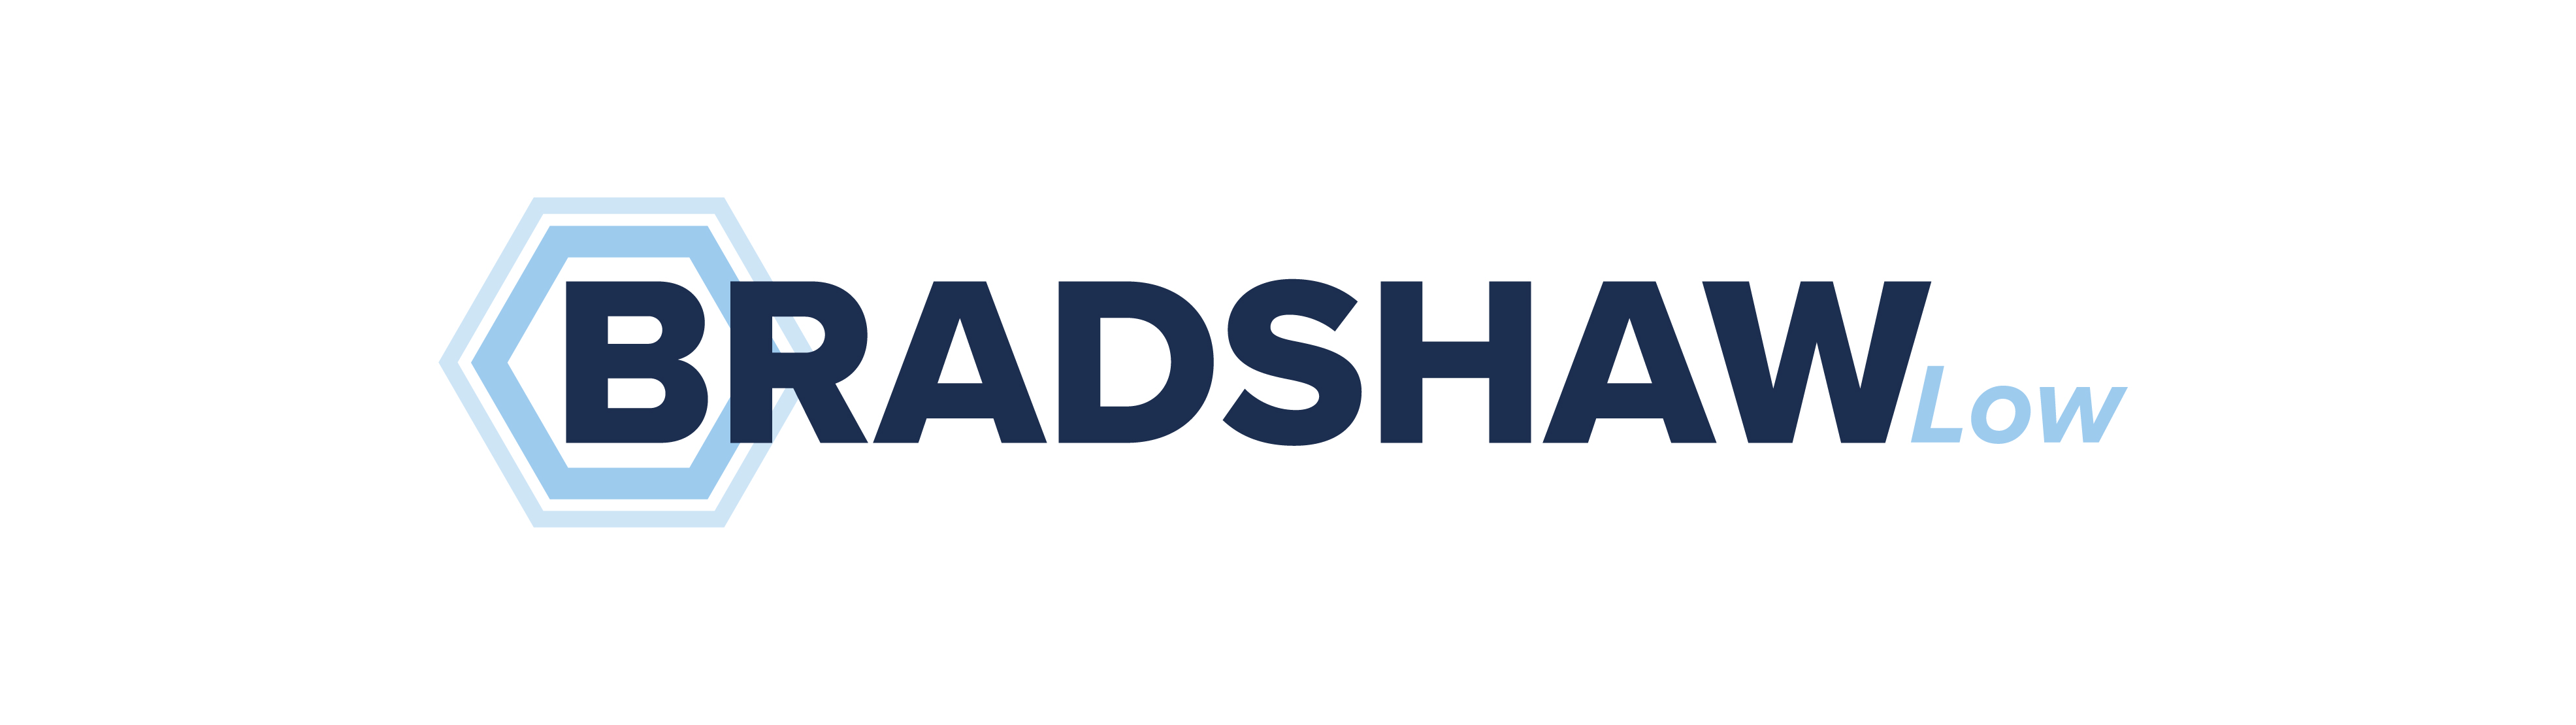 bradshaw low logo